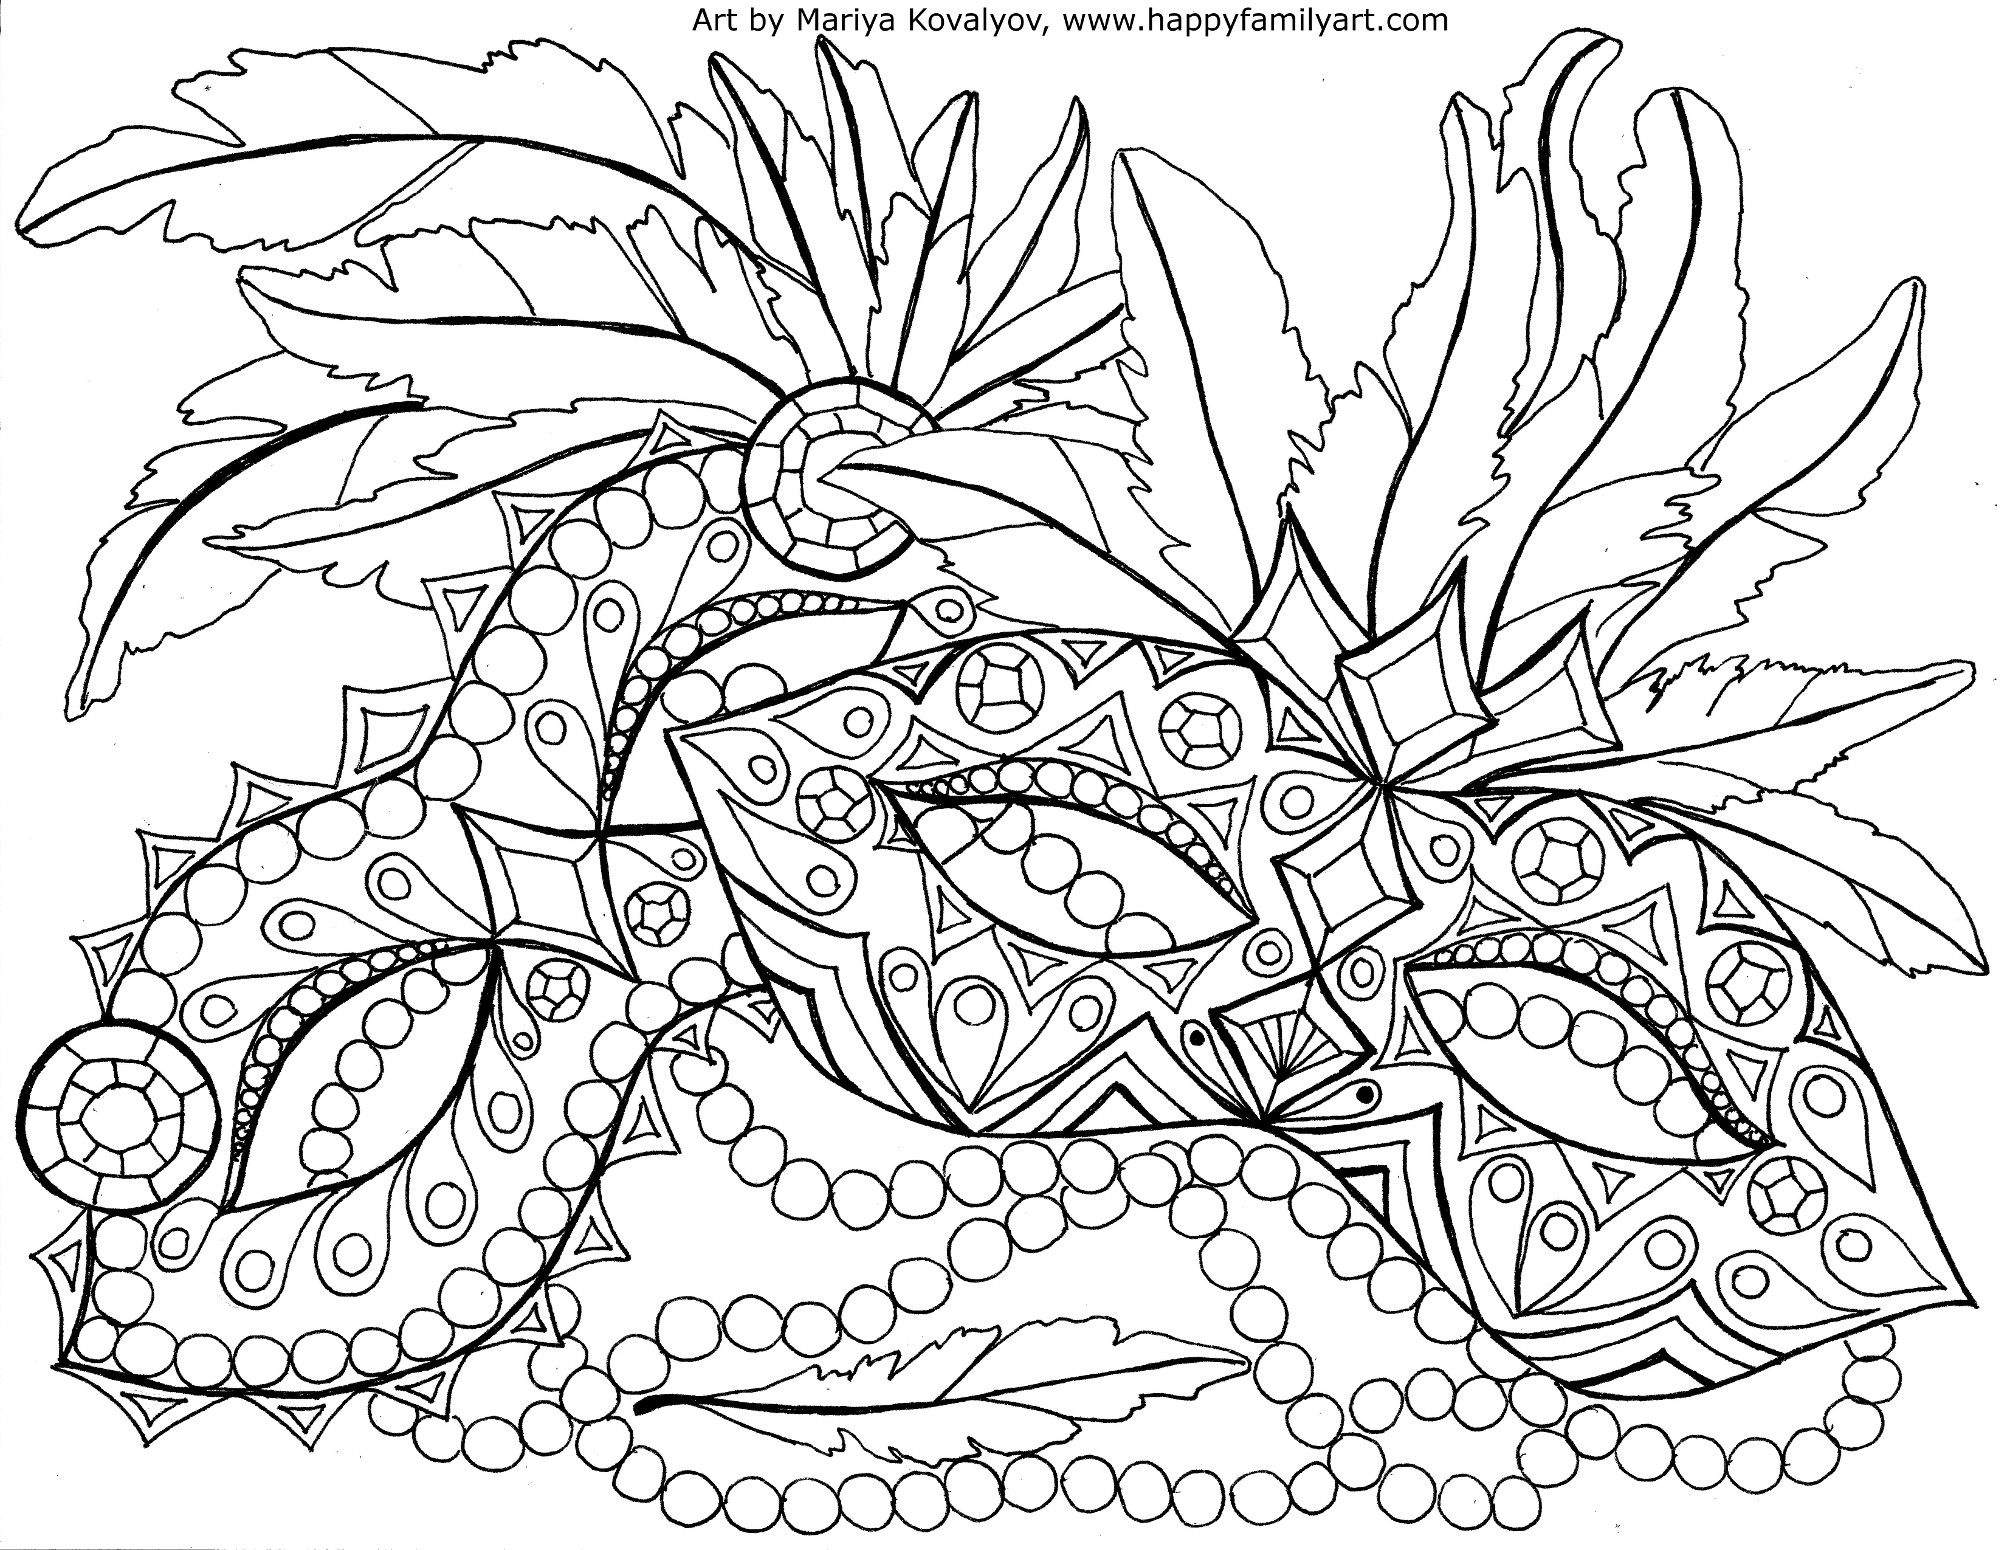 Mardi Gras Masquerade Colouring Page For Adults